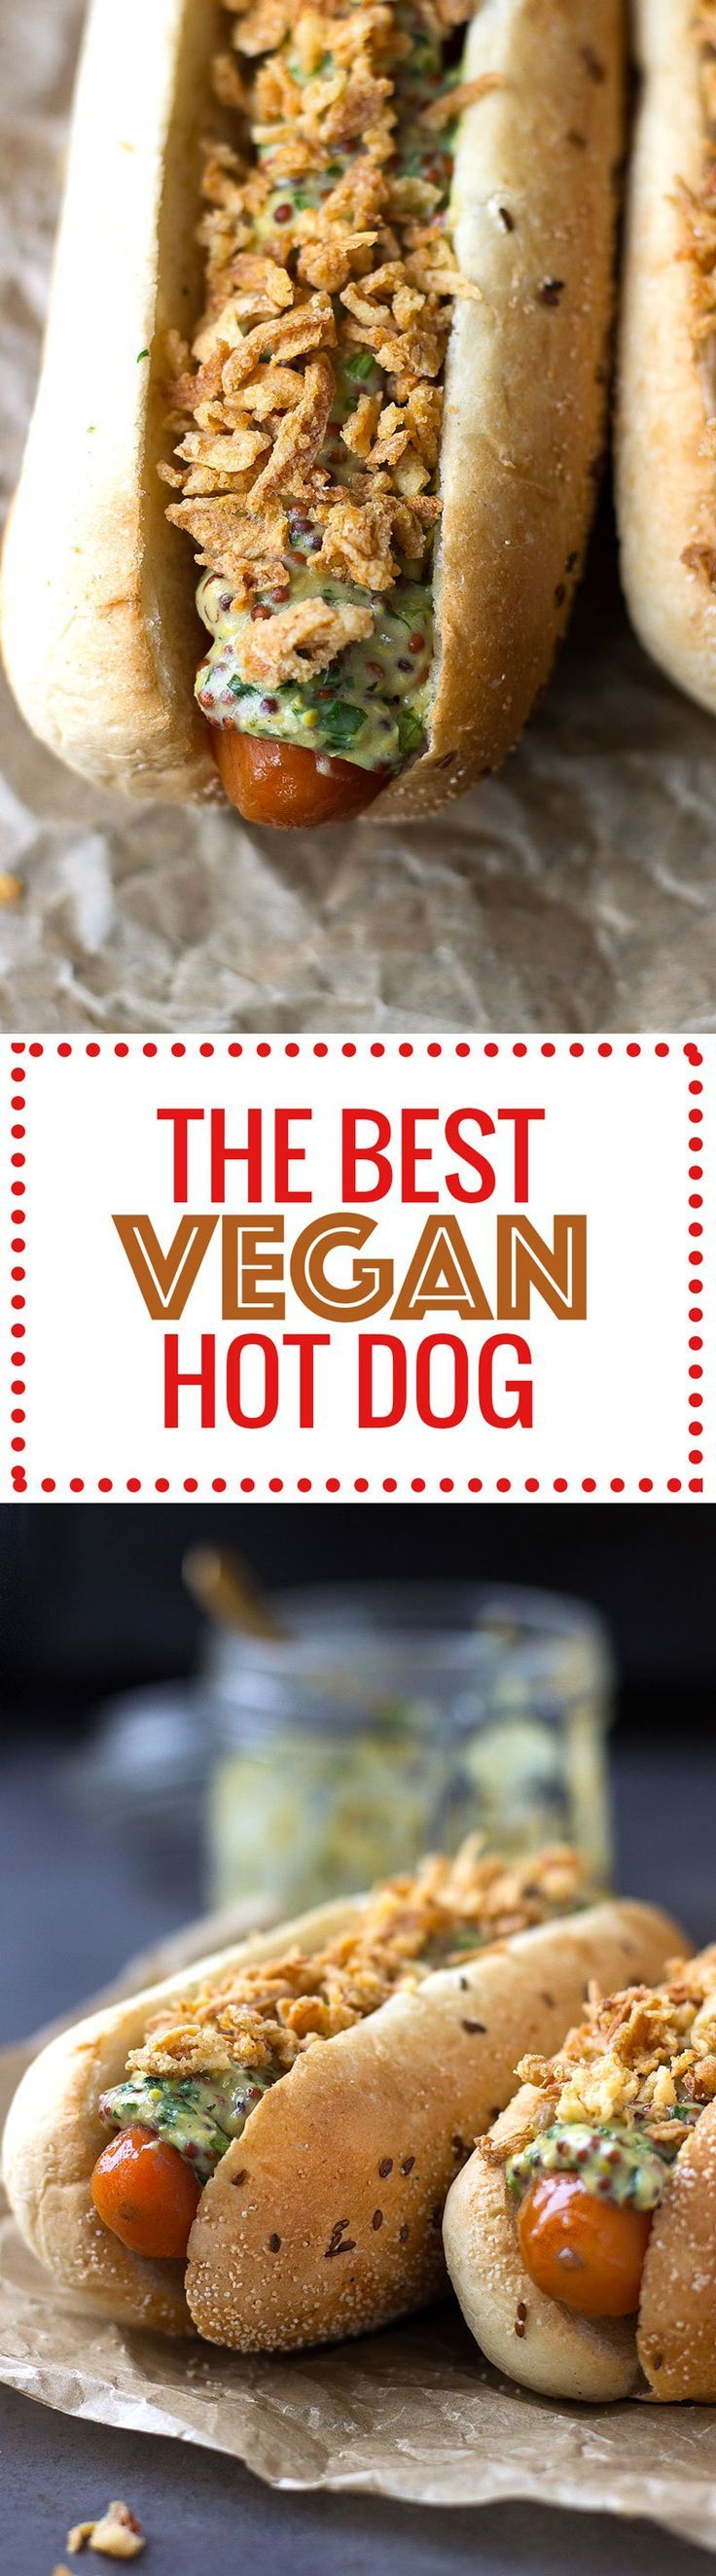 The BEST vegan hot dog! It's gluten free, nut free and soy free as well! And easy peasy to make! Get the recipe at http://nutritionistmeetschef.com